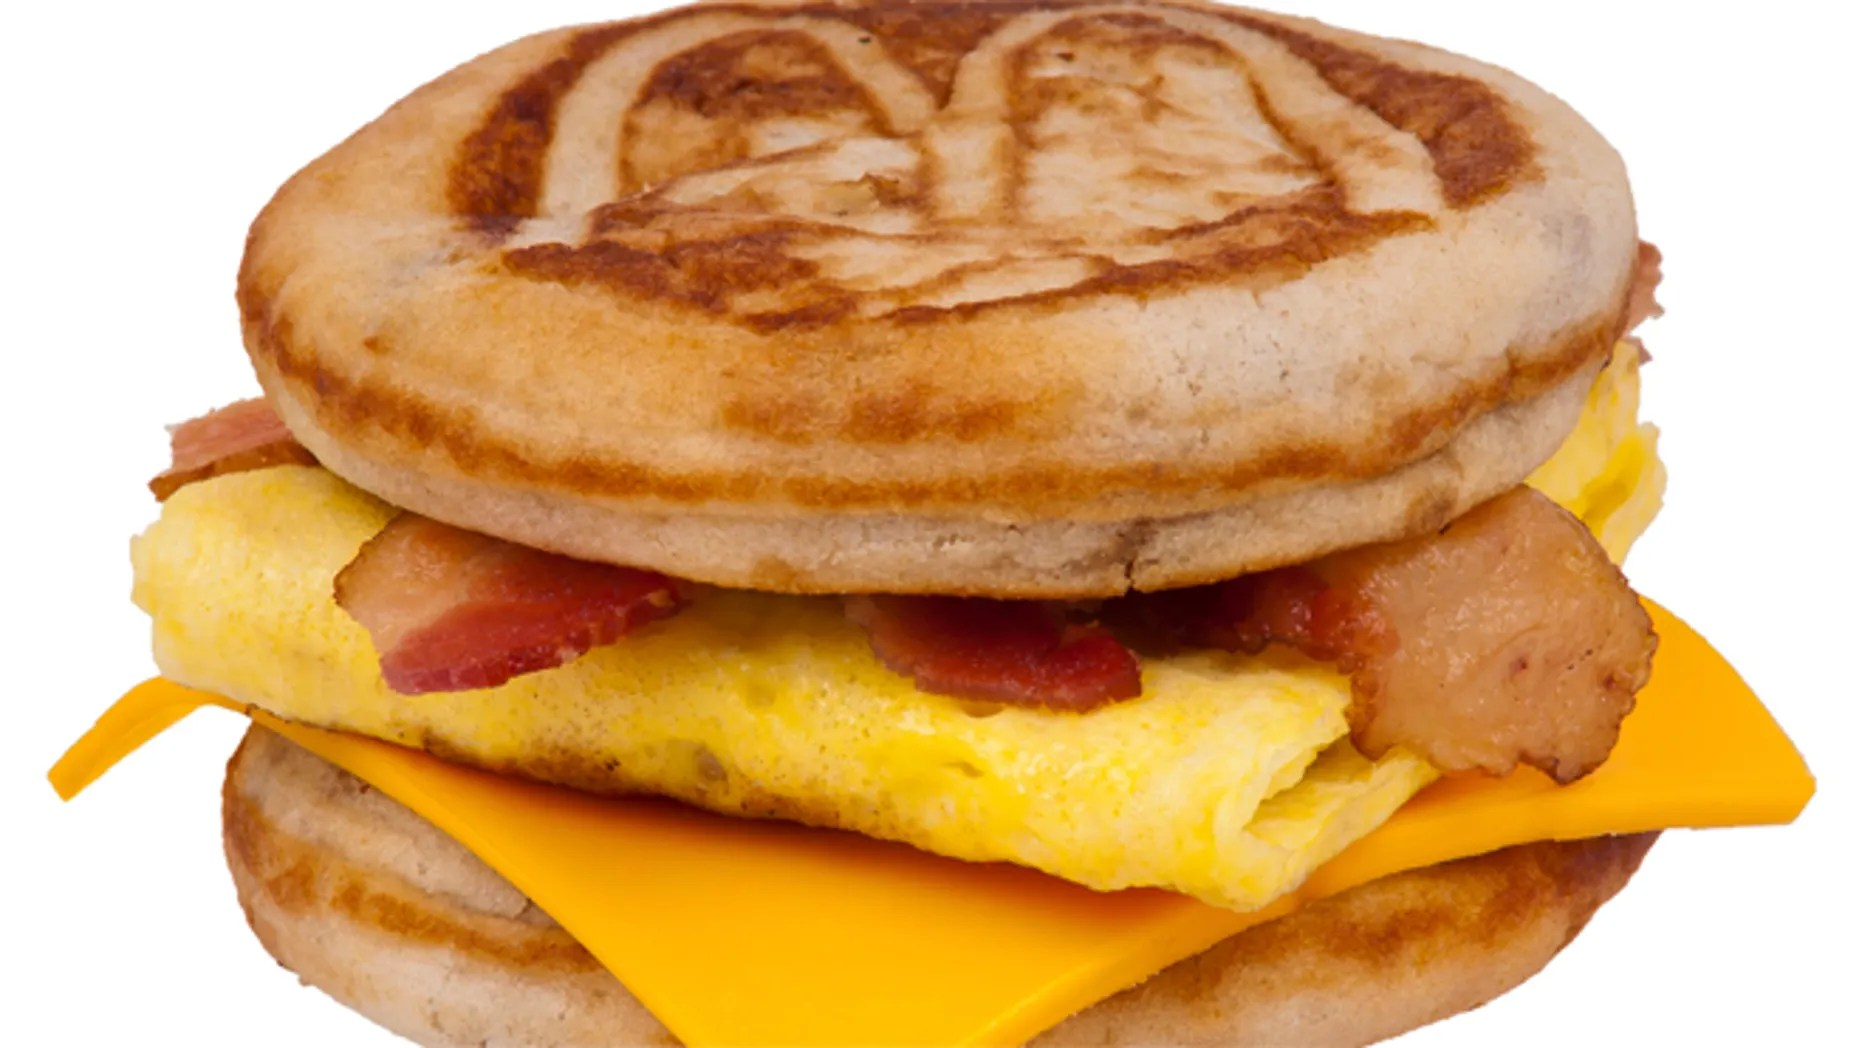 Breakfast All Day Mcdonald S All Day Breakfast Won T Be The Full Menu Fox News